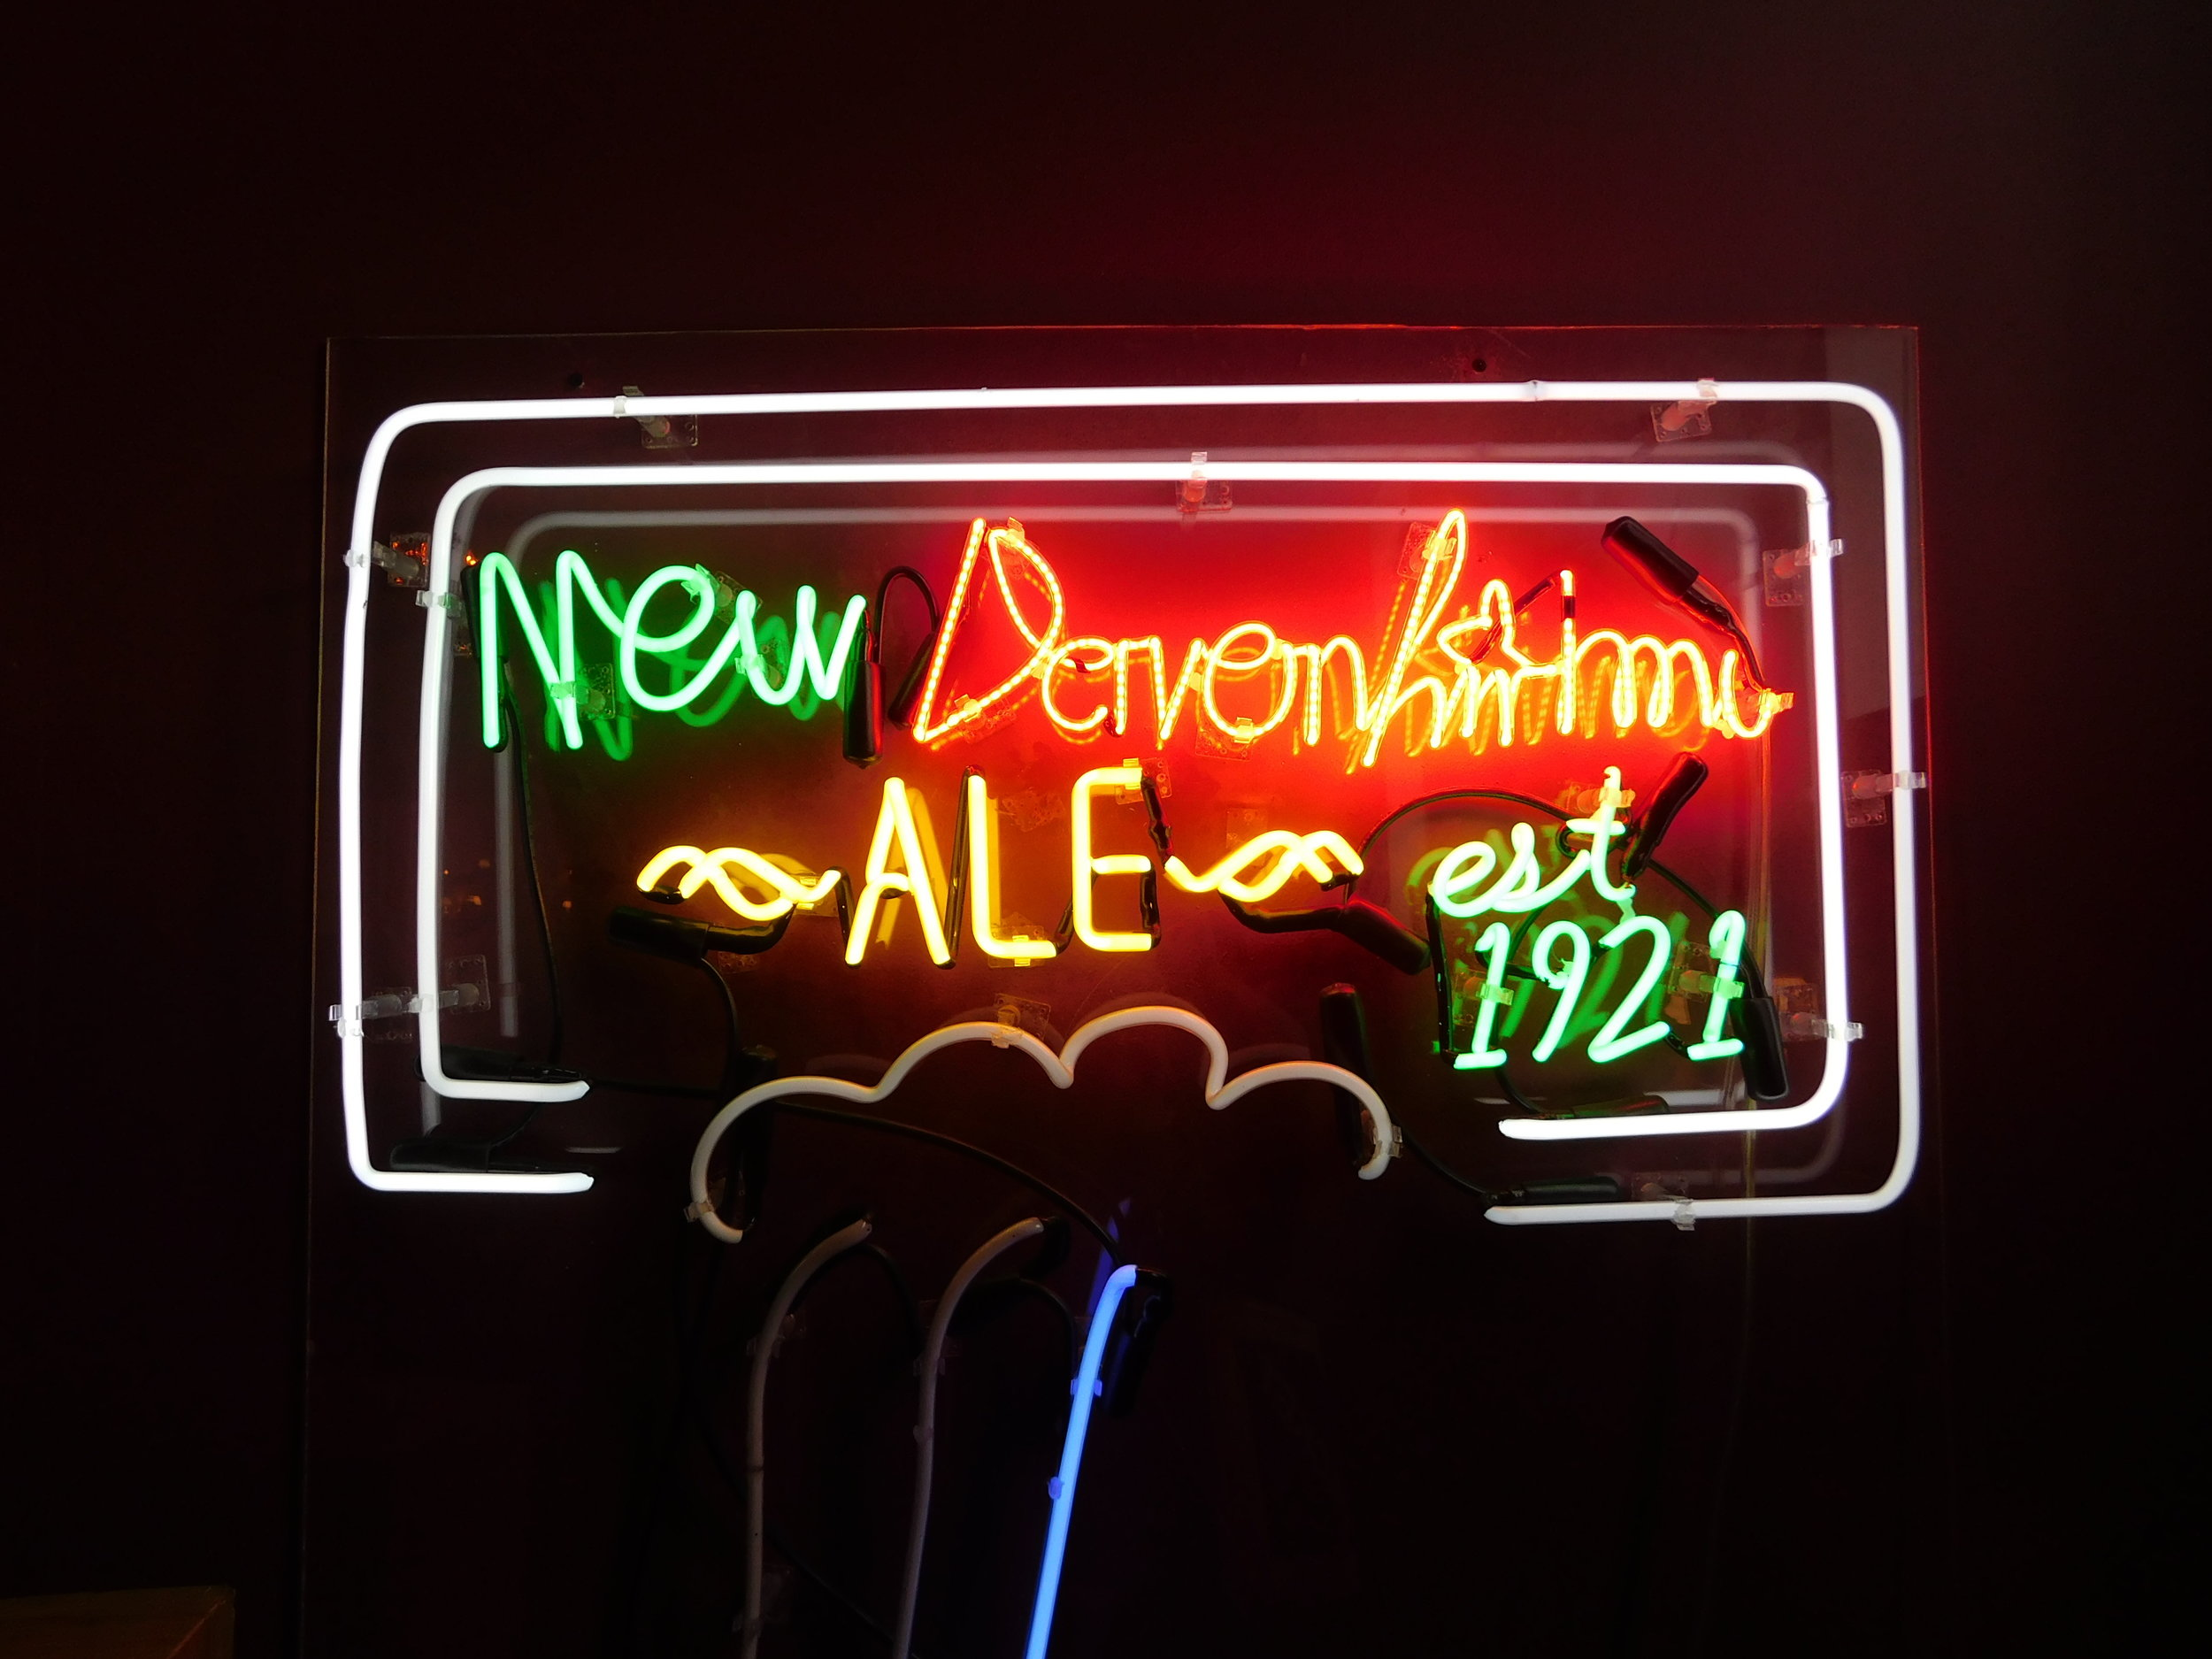 New Davonhaime Beer Sign 2  (2016), neon, 36 x 36 inches. Photo by the author.